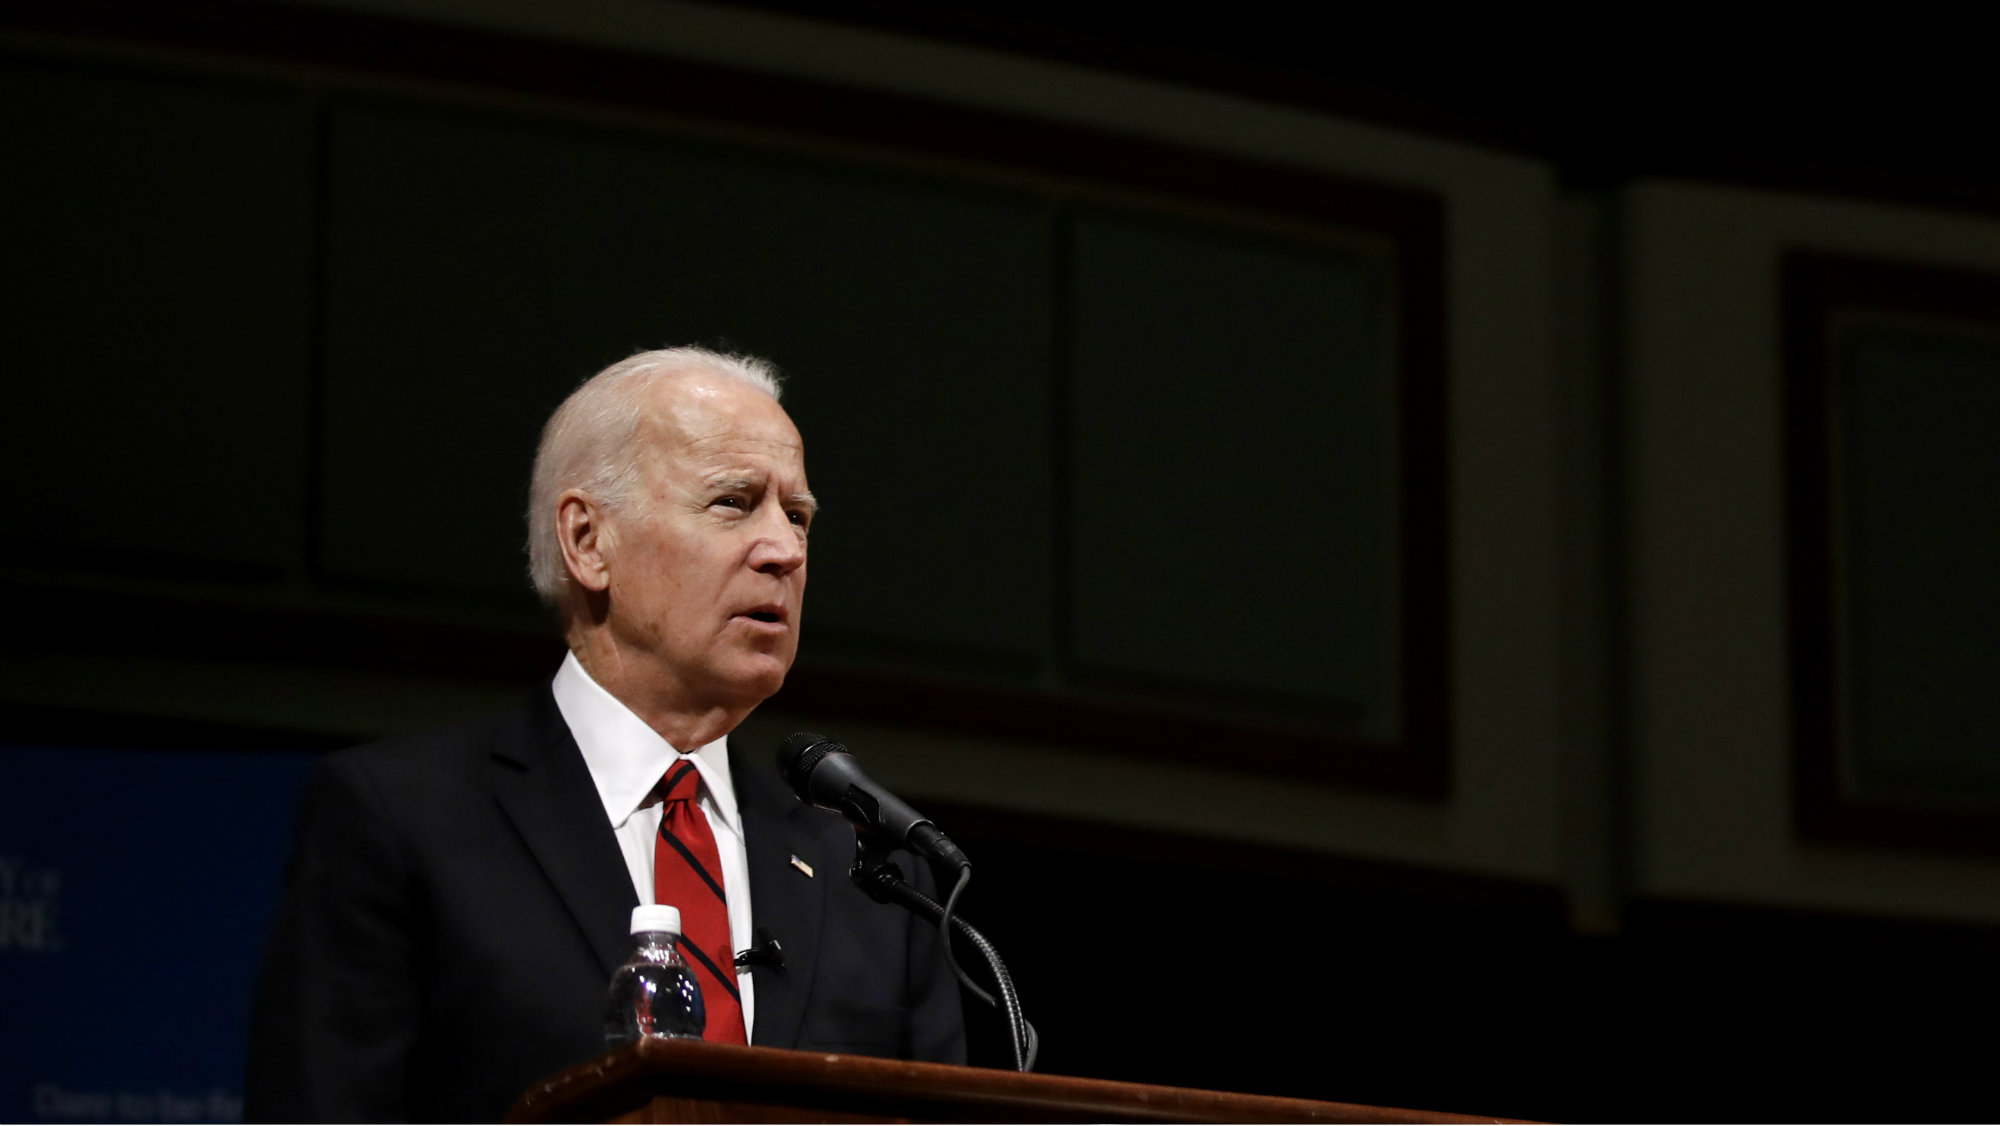 Former Vice President Joe Biden speaks during an event to formally launch the Biden Institute, a research and policy center focused on domestic issues at the University of Delaware, in Newark, Del., Monday, March 13, 2017.